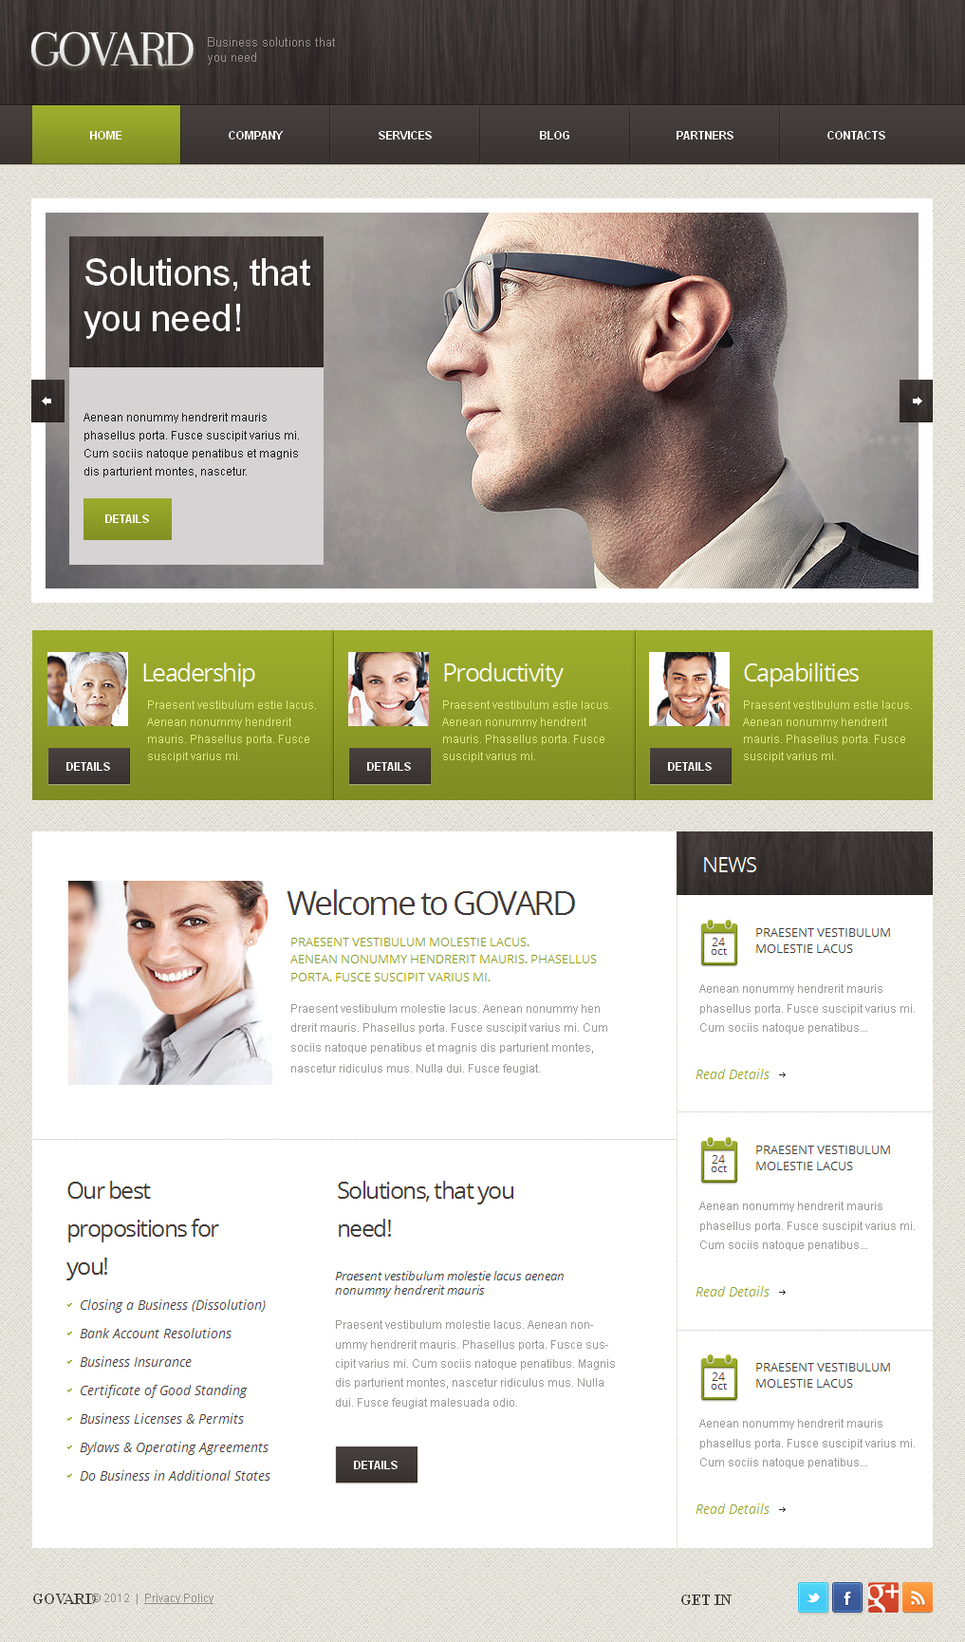 Business Website Template Done in Gray Tones with Some Green Elements - image